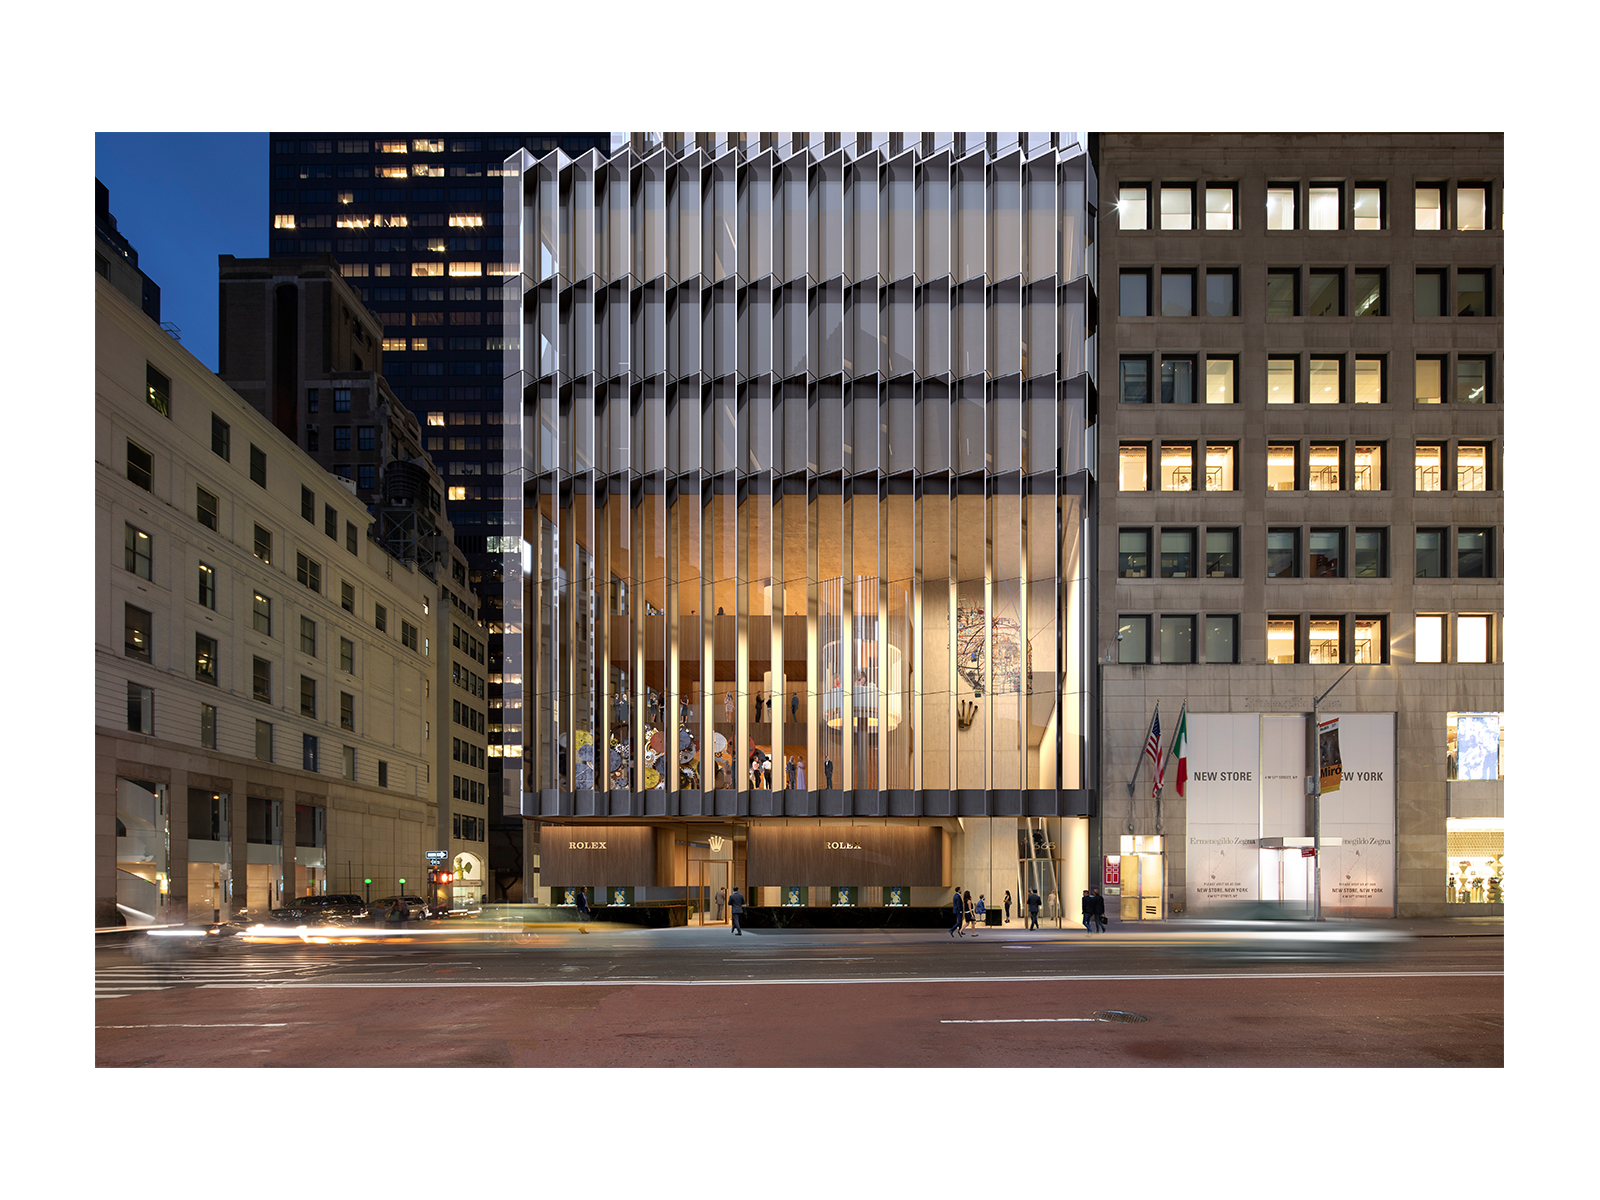 Architectural Visualization for a headquarter office building in New York by David Chipperfield Architects.